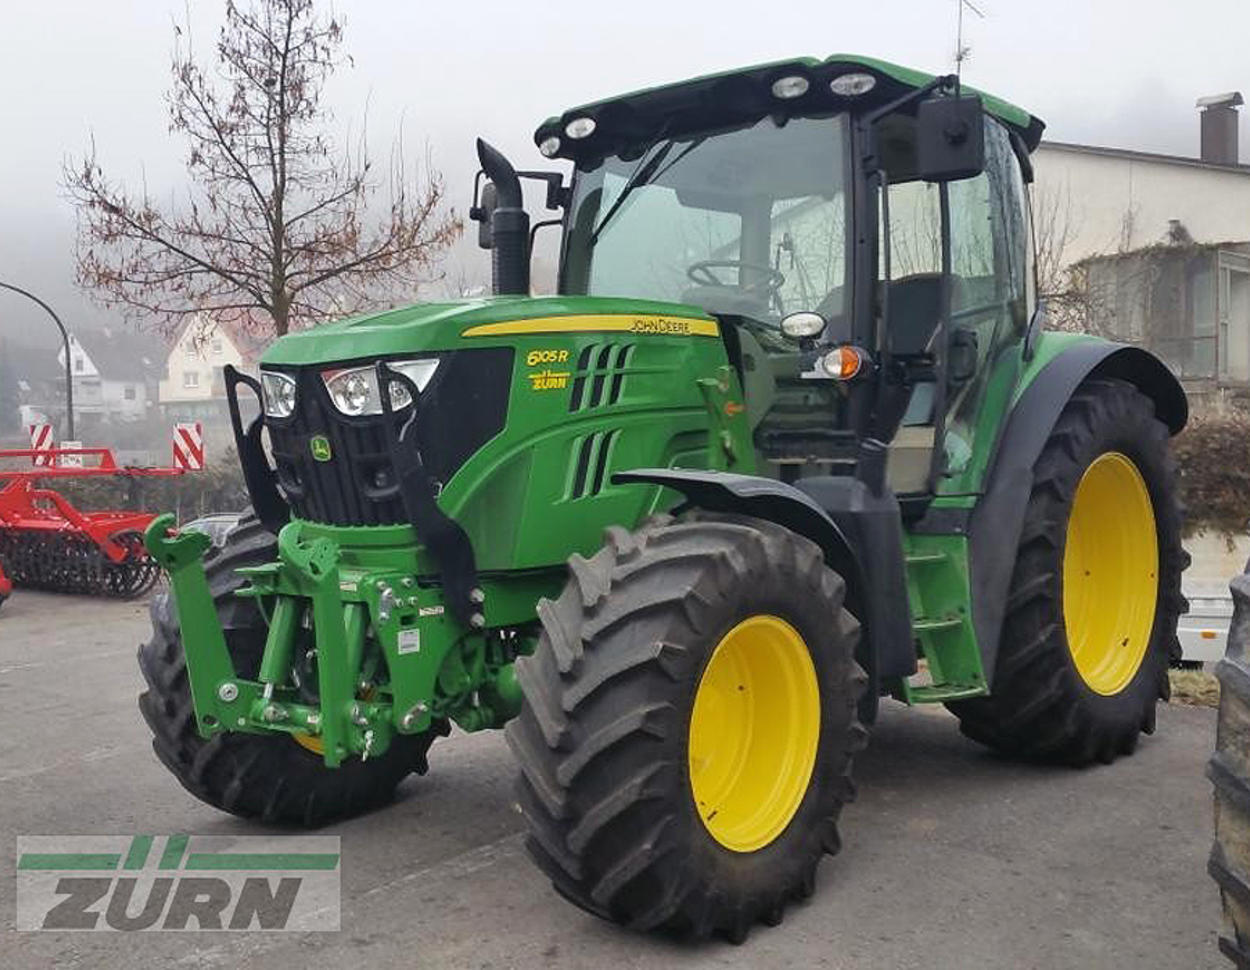 traktor john deere 6105r f r euro zu haben. Black Bedroom Furniture Sets. Home Design Ideas